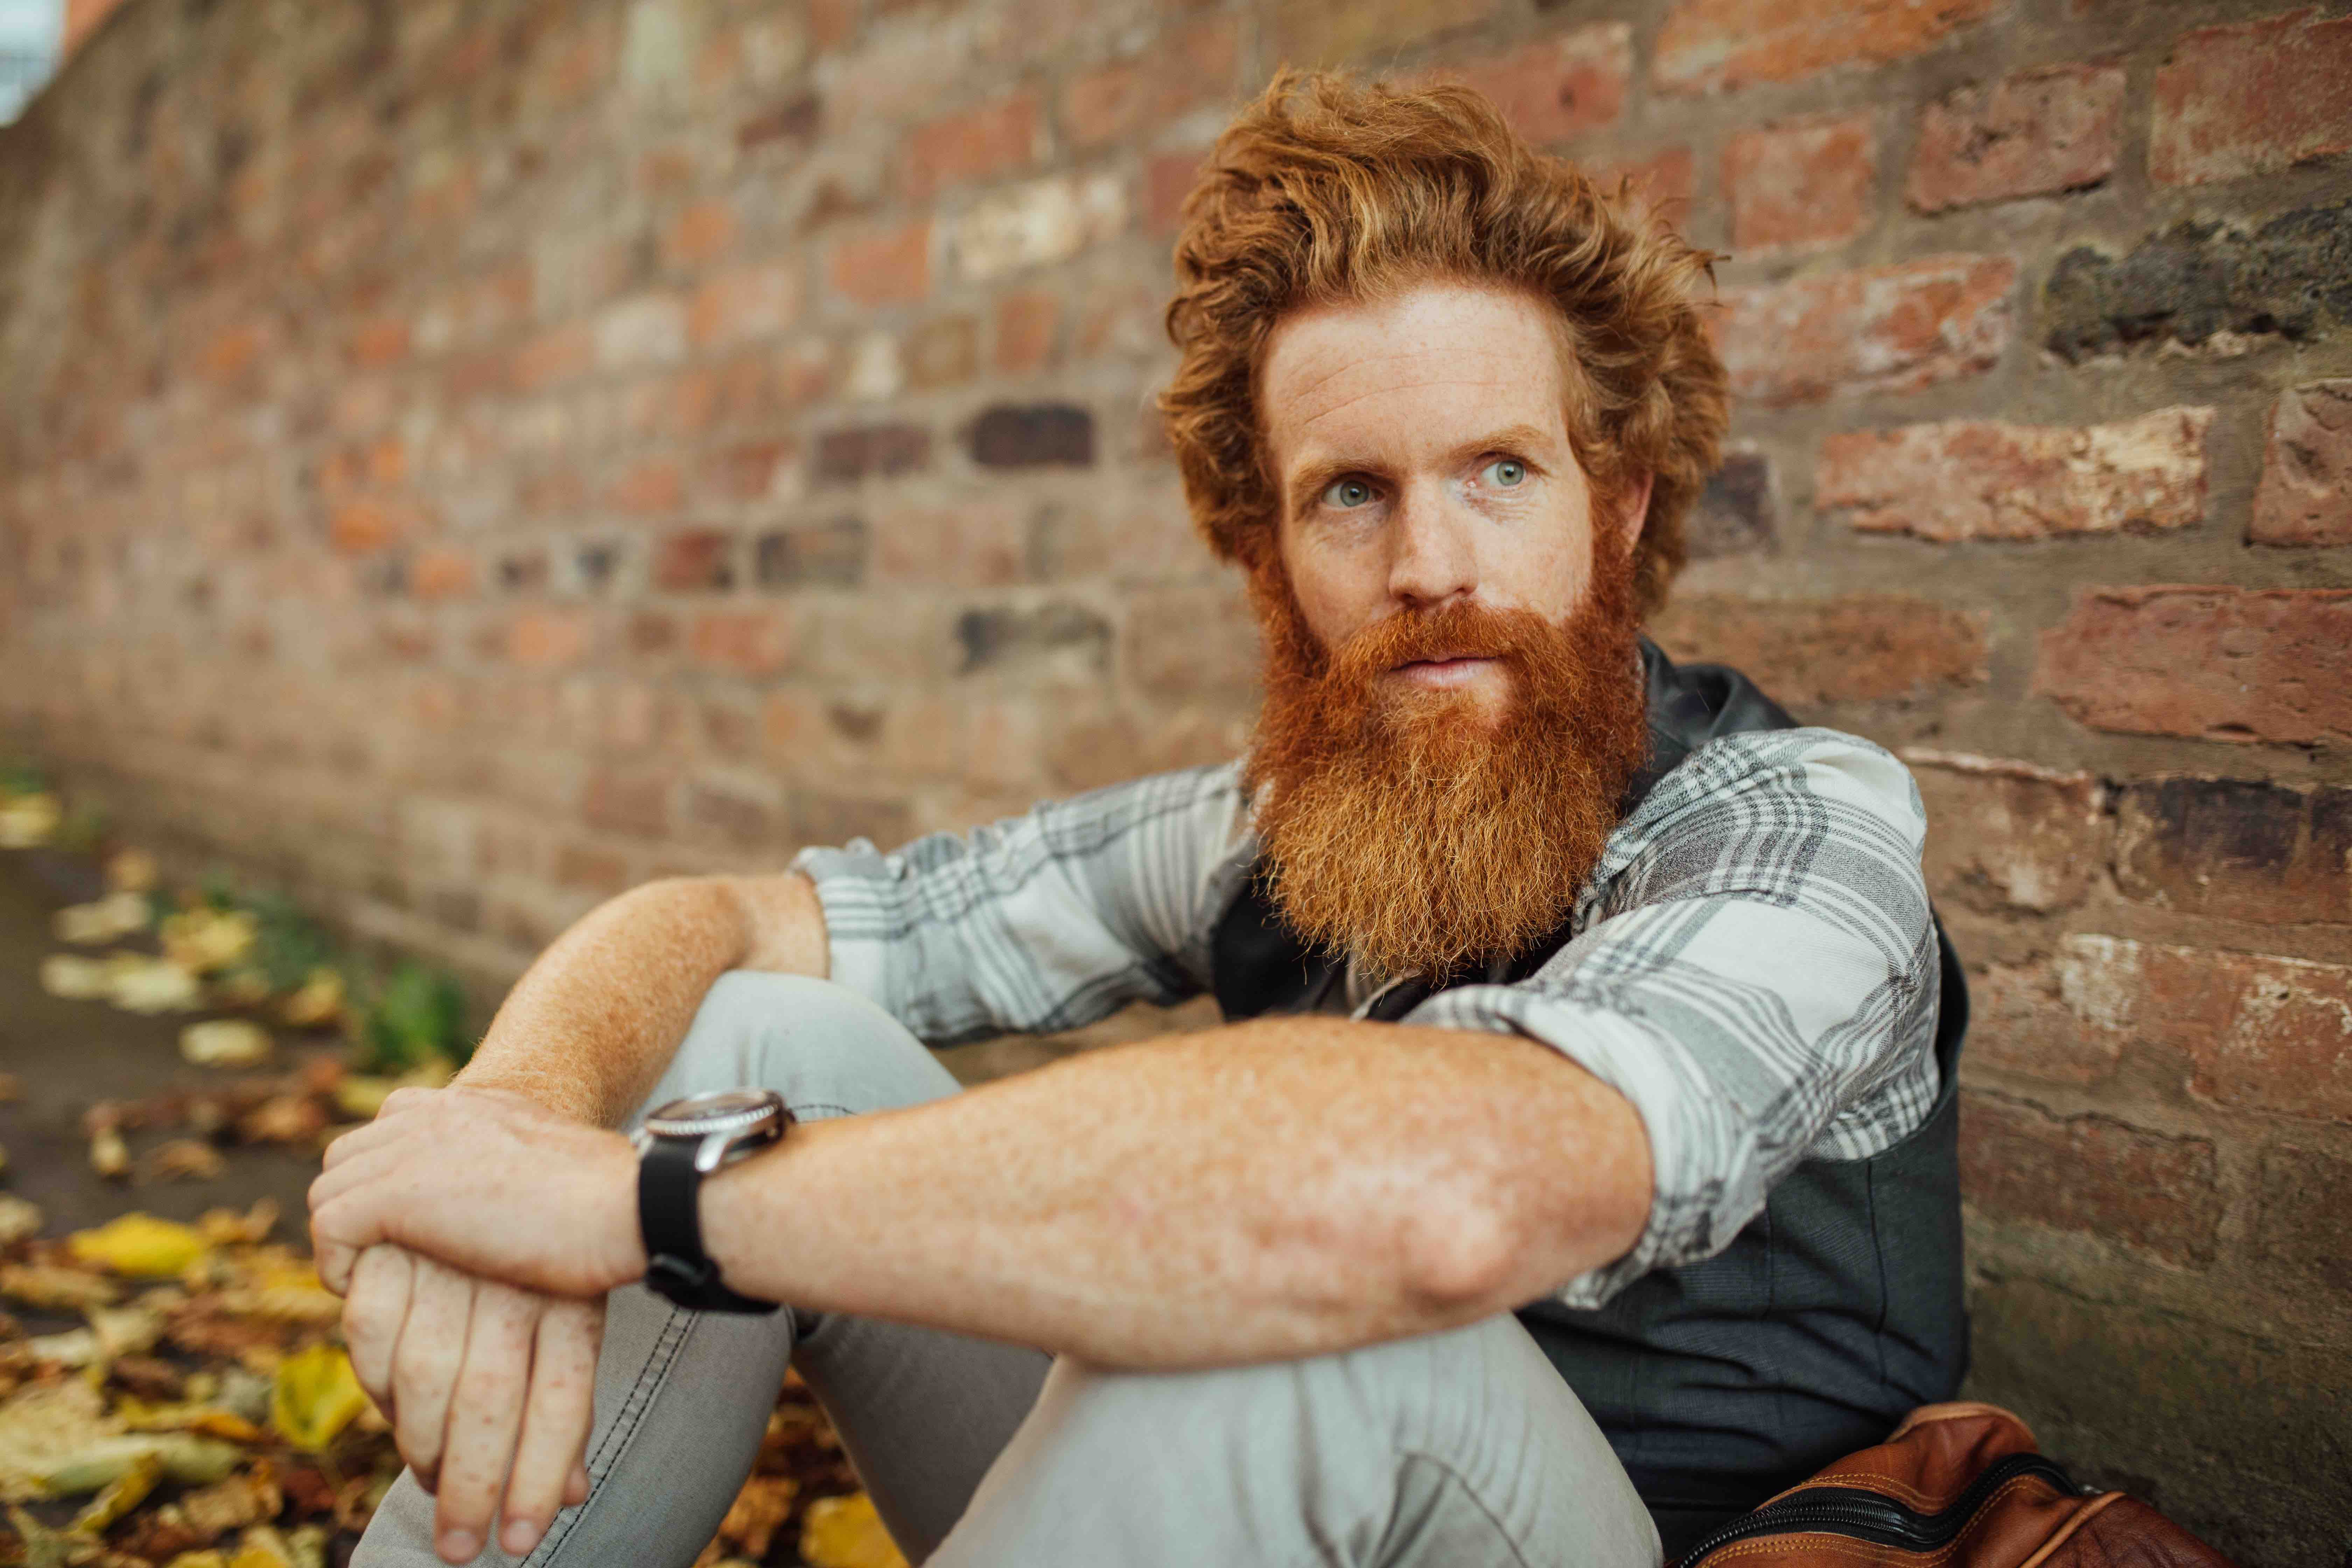 'The audience LOVED it!  I cannot think how he could have been better.' ITV on Sean Conway